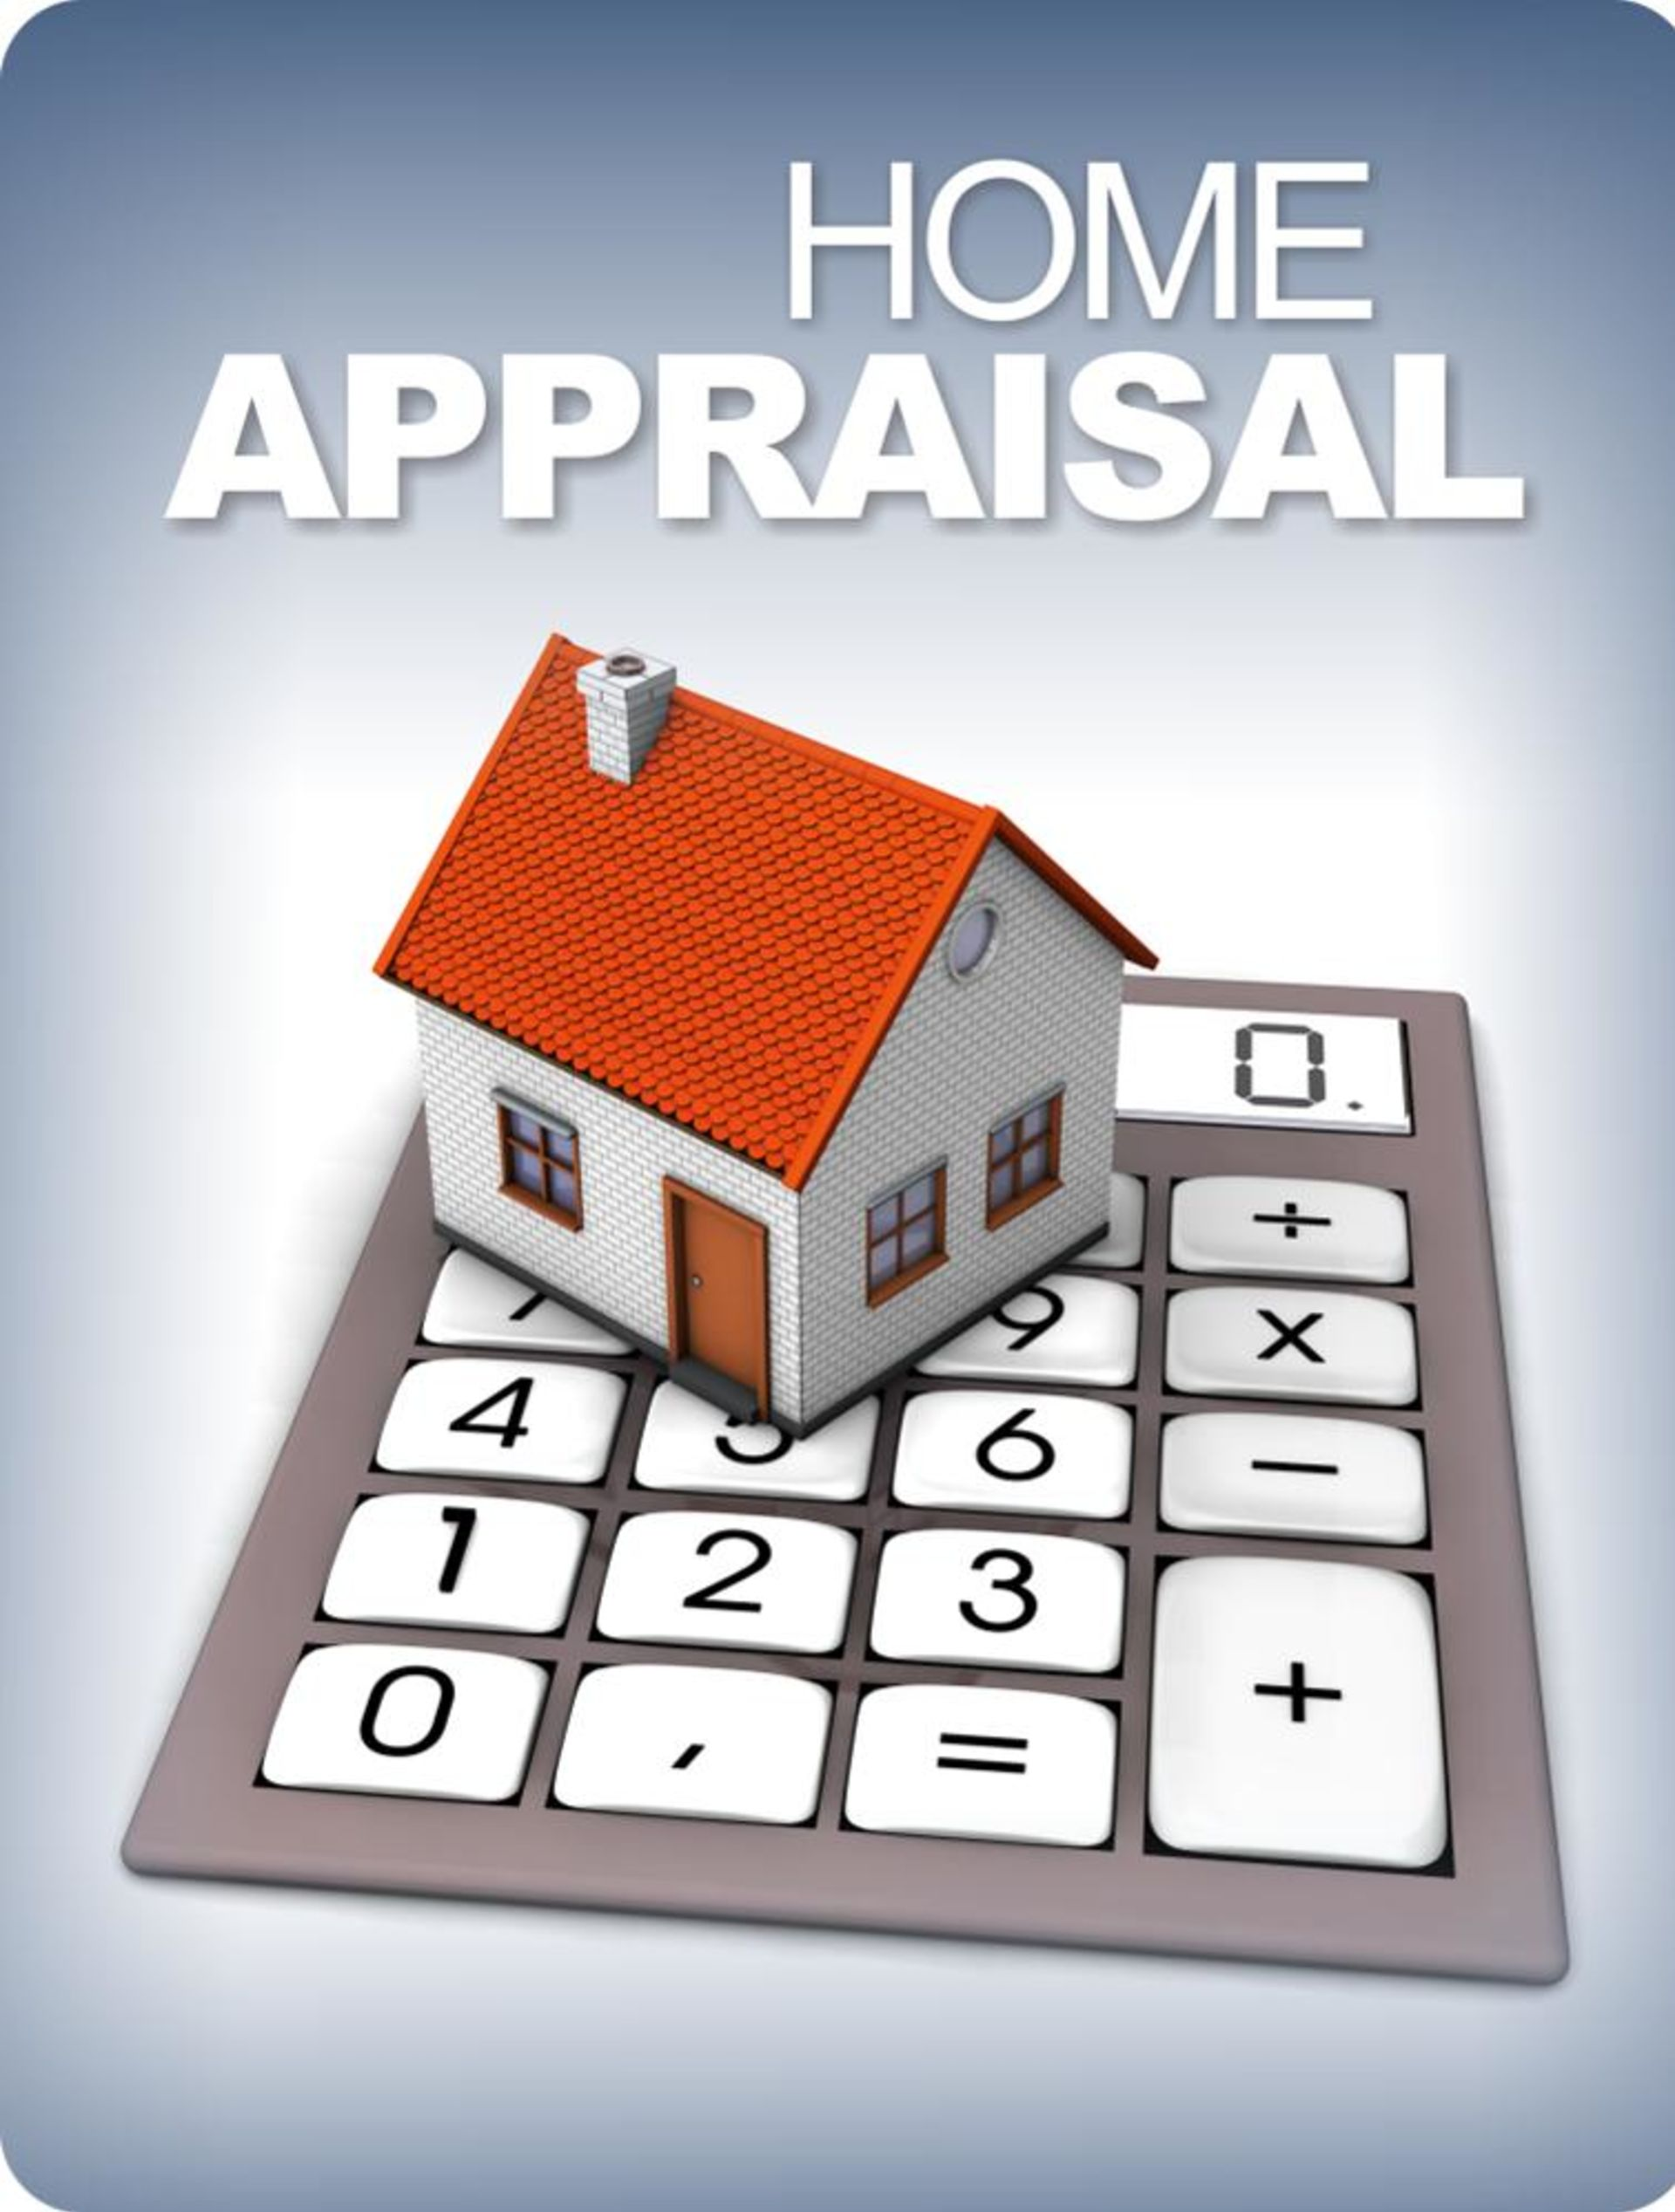 What Makes a Divorce Appraisal Different?